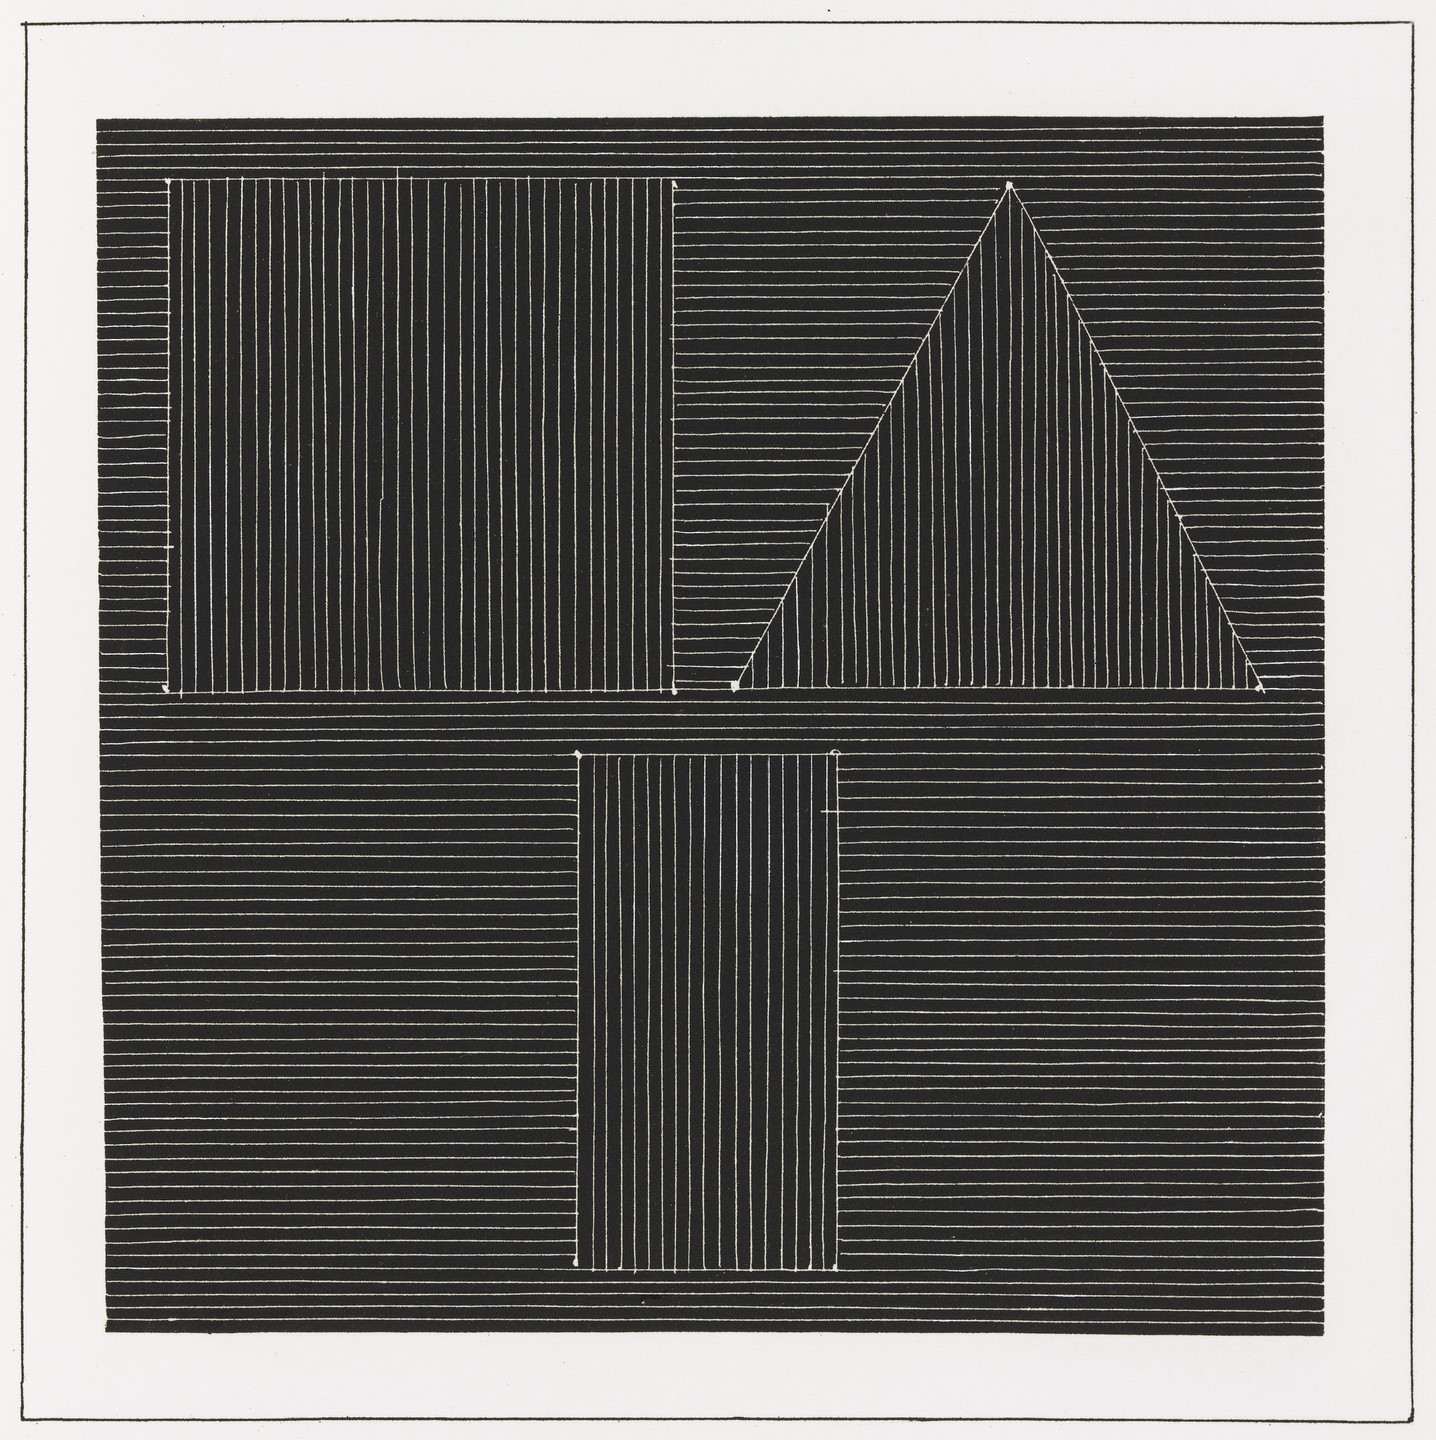 Sol LeWitt. Plate (folio 27) from Six Geometric Figures and All Their Combinations, Volume I. 1980